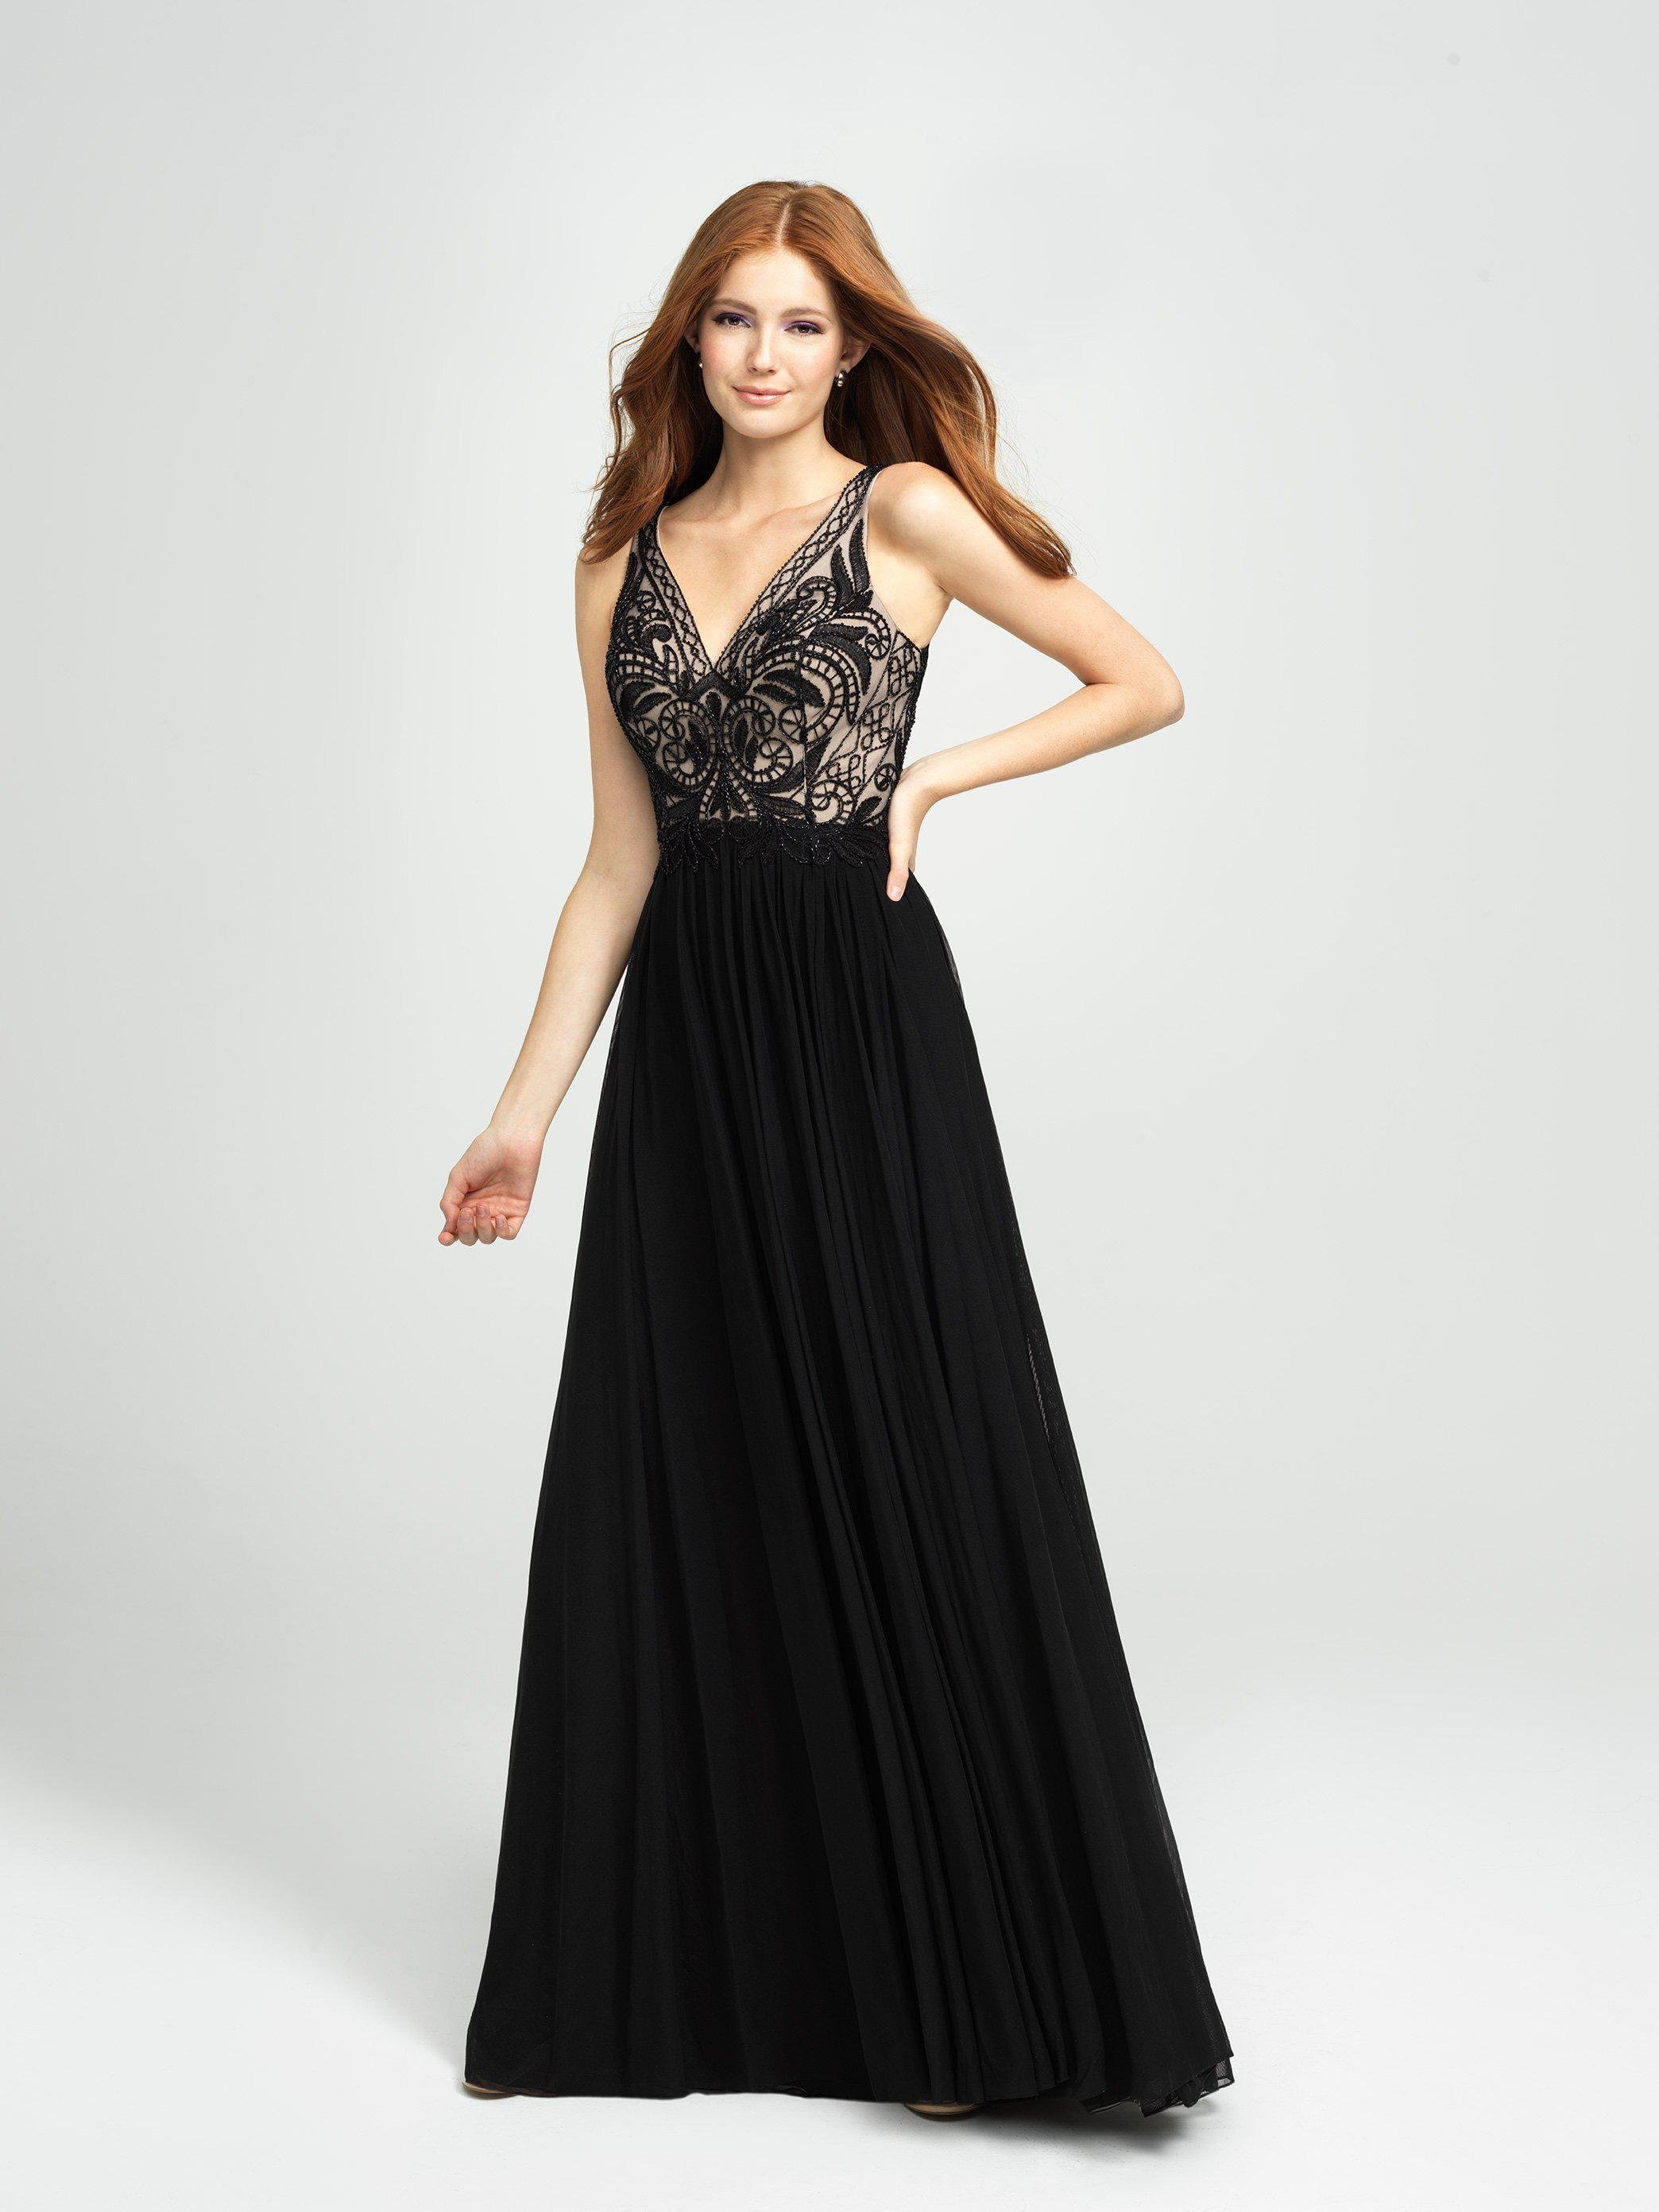 912a5c9ee9d Madison James. Women s Black 19-108 Asymmetrical Embroidered High Slit Gown